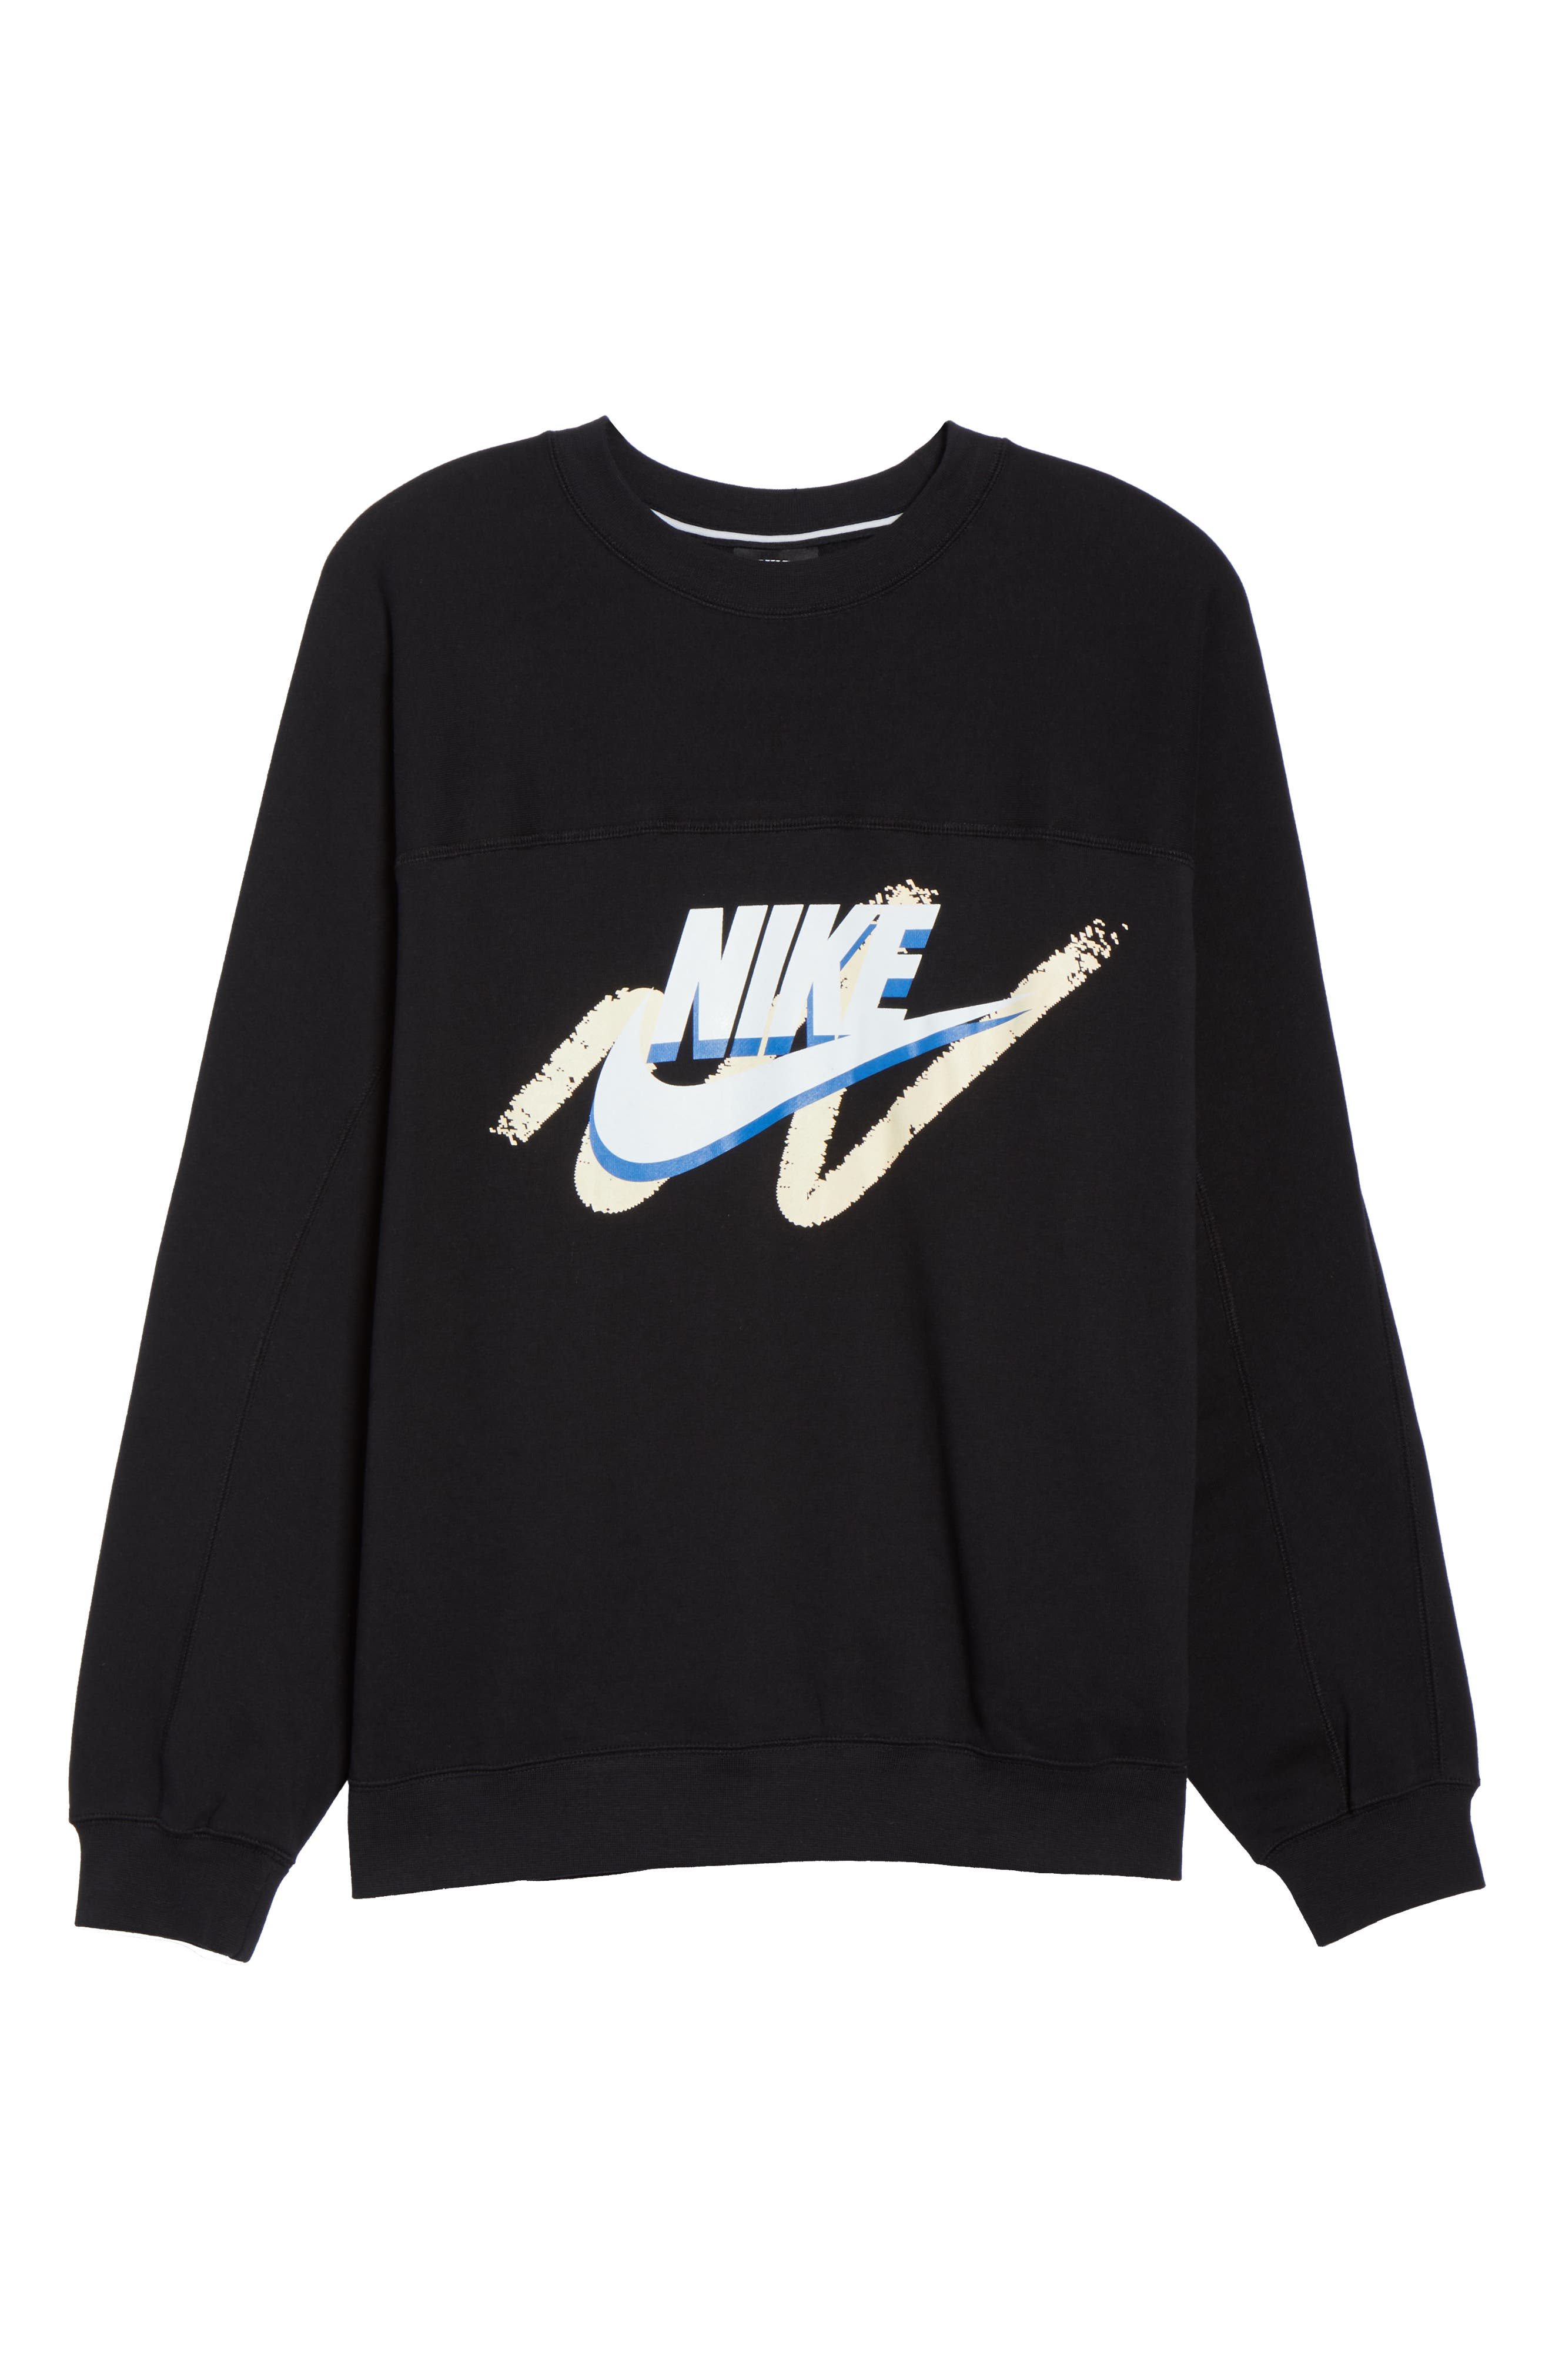 Sportswear Archive Sweatshirt,                             Alternate thumbnail 7, color,                             010